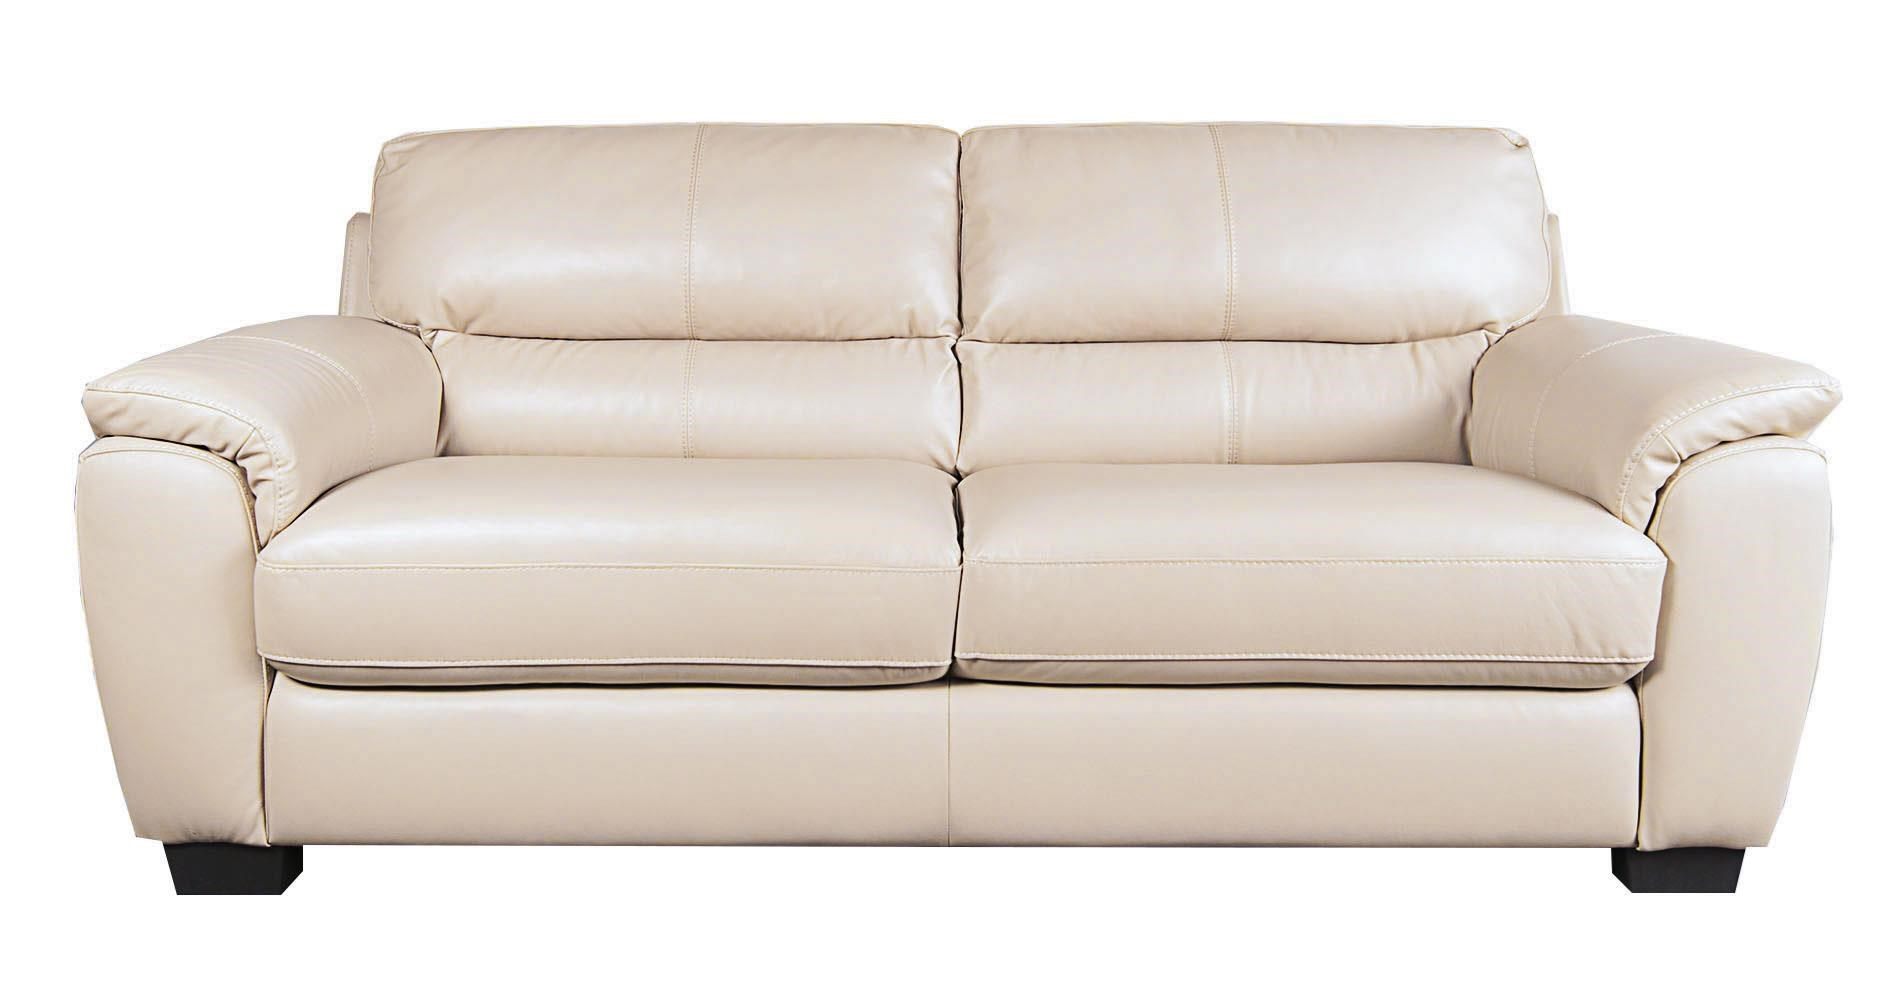 Color leather sofa thesofa for Leather couch